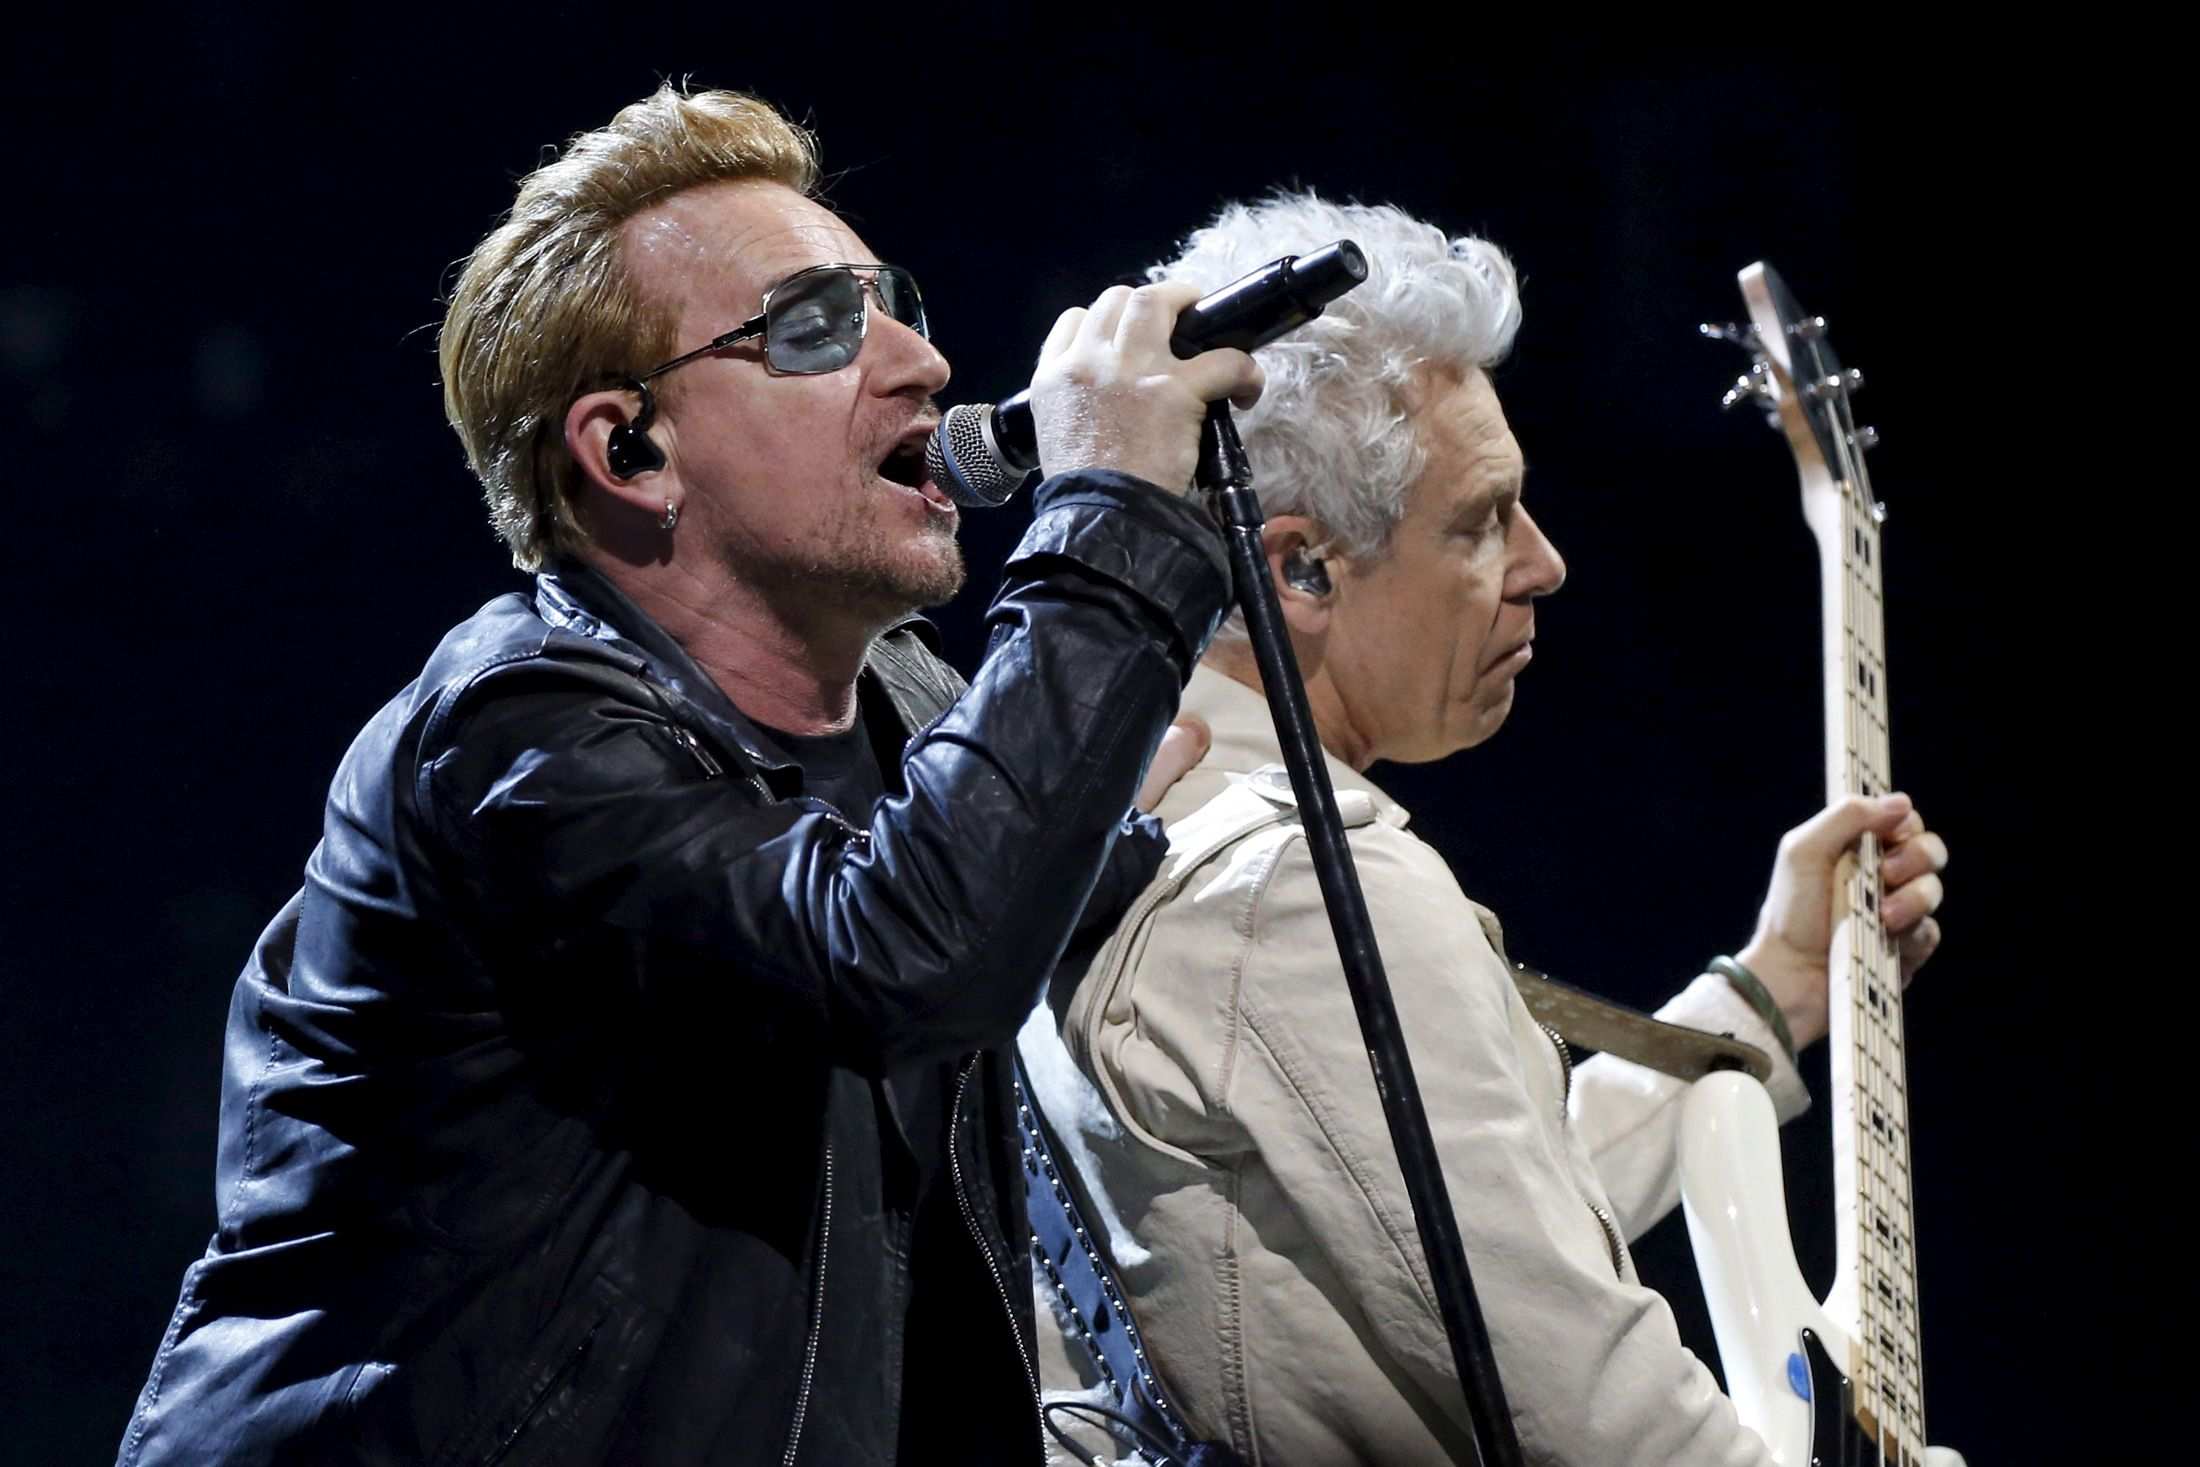 U2 play Paris concert and honor victims of attacks